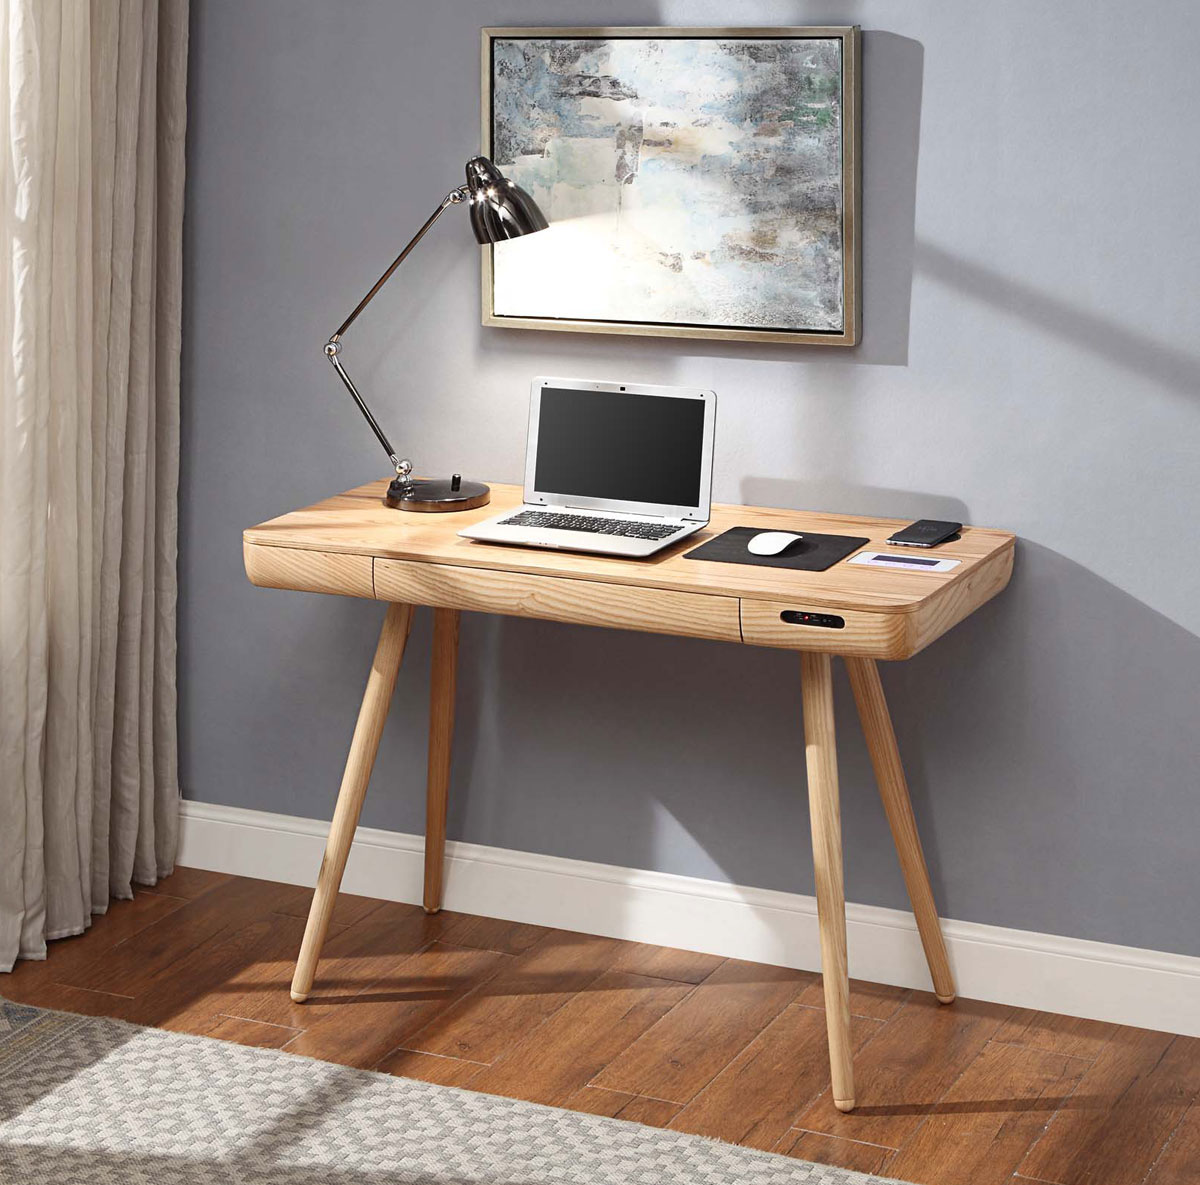 Discover How To Create A Home Office With Limited Space In Your Small  Apartment, From